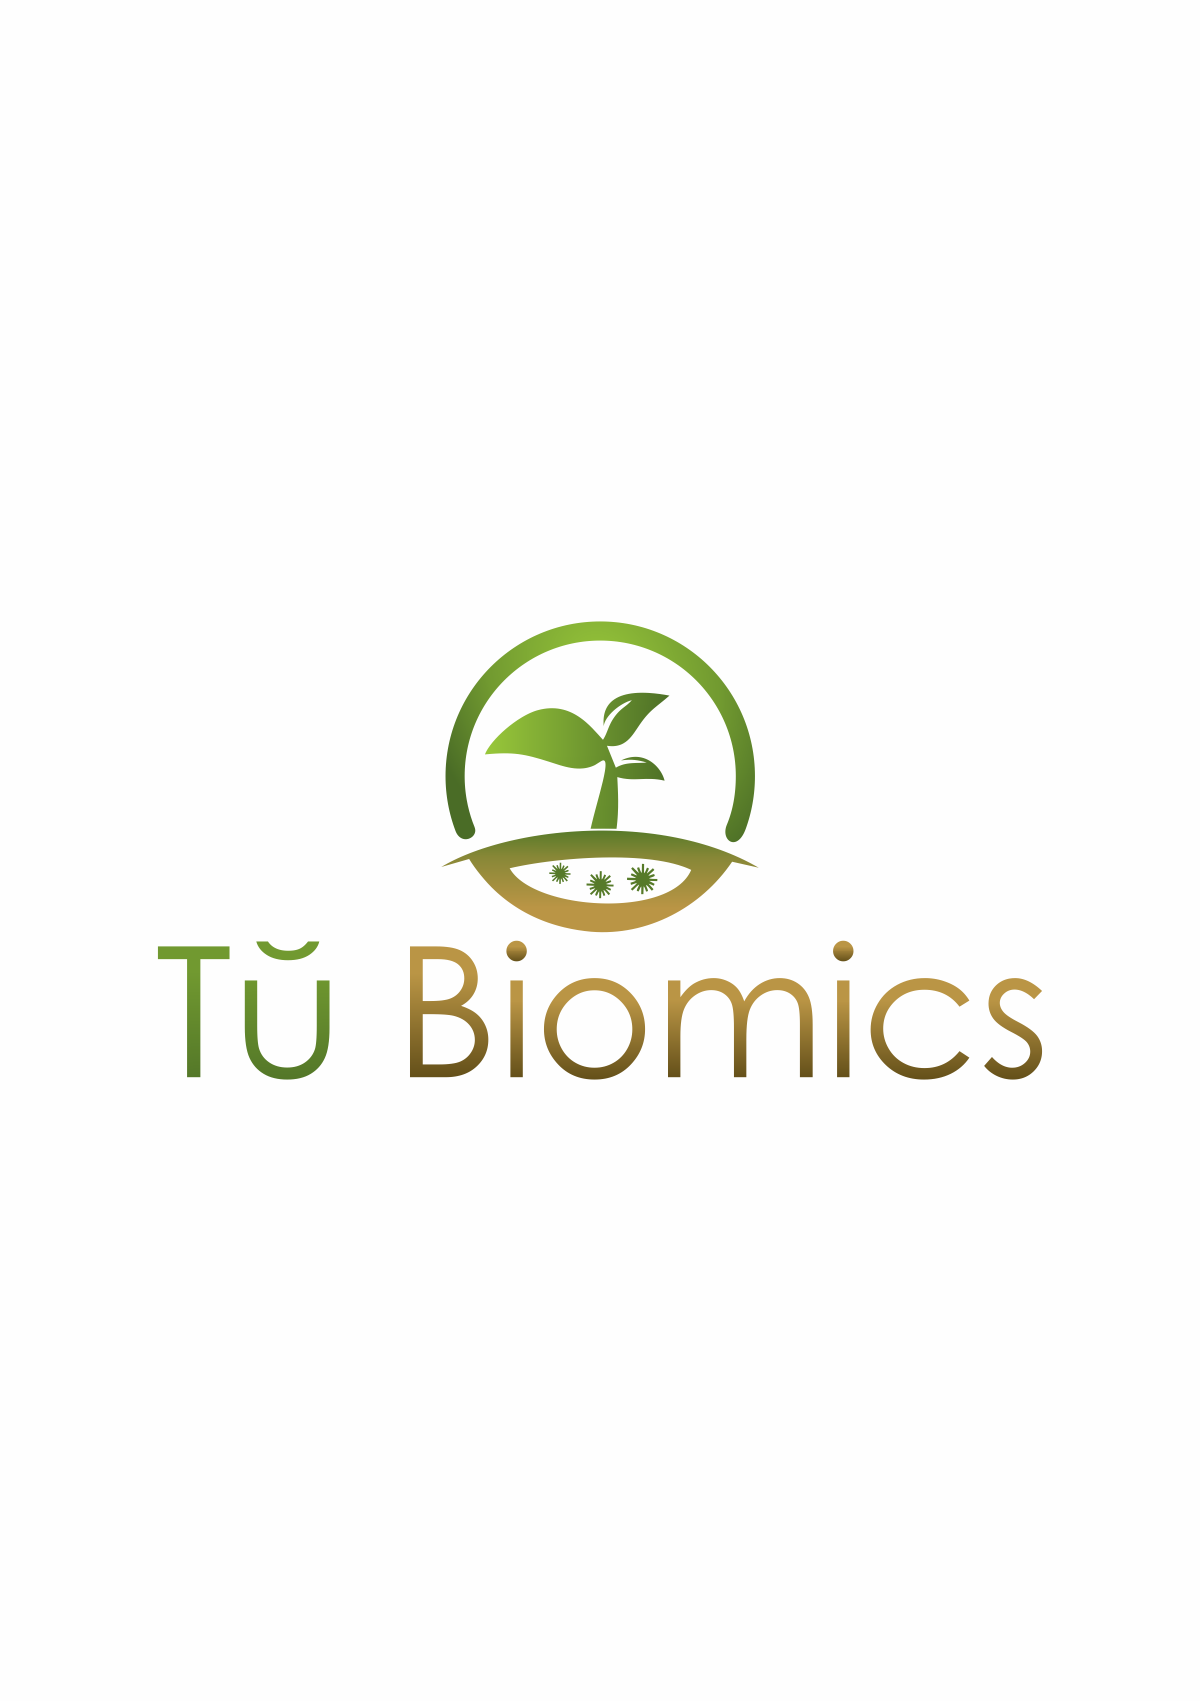 Unique inspired logo for Tŭ Biomics, an novel agtech start-up